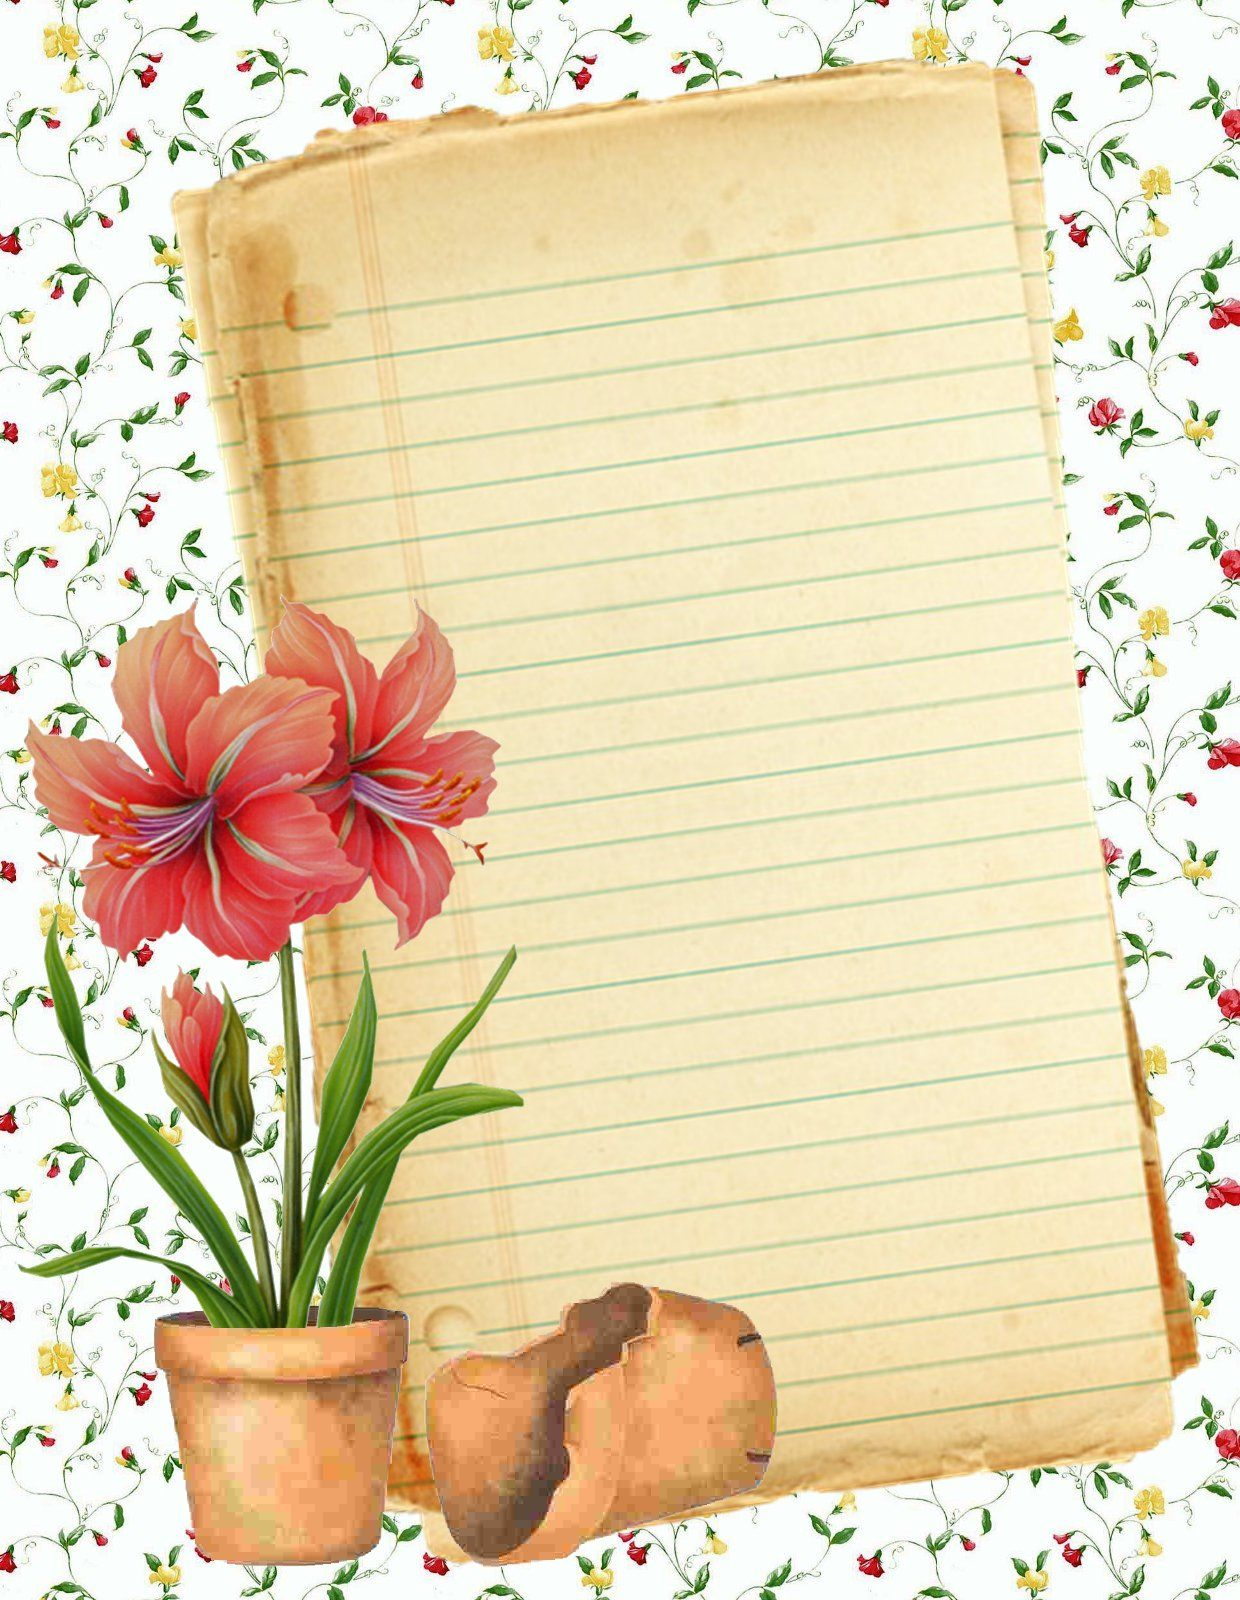 Free blank recipe quick page printable stationery